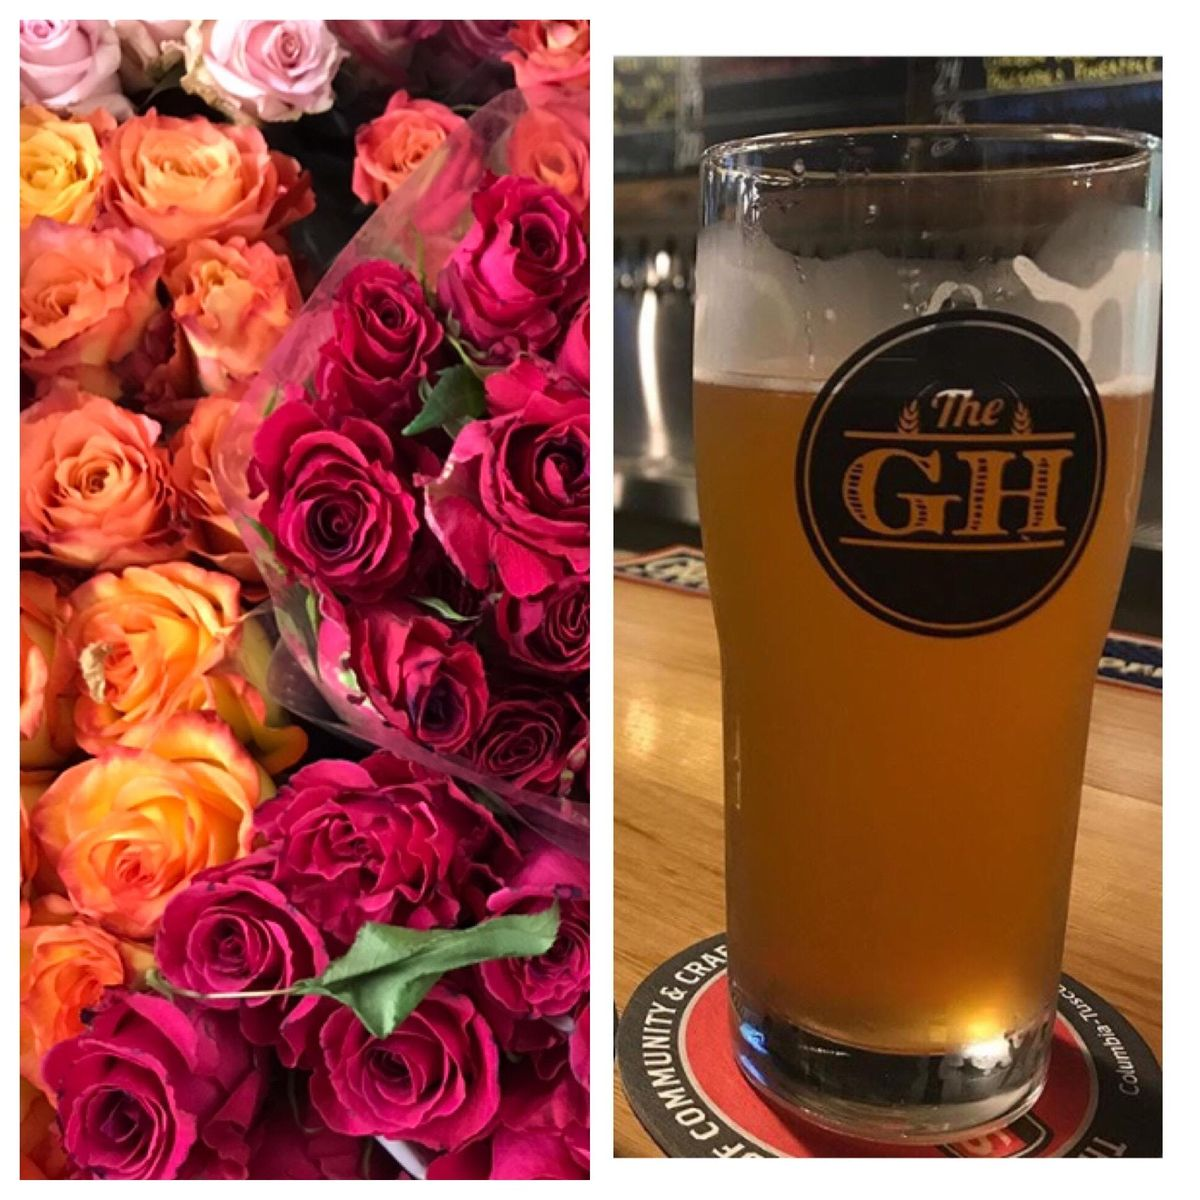 Sunday FUNday Flowers at The Growler House